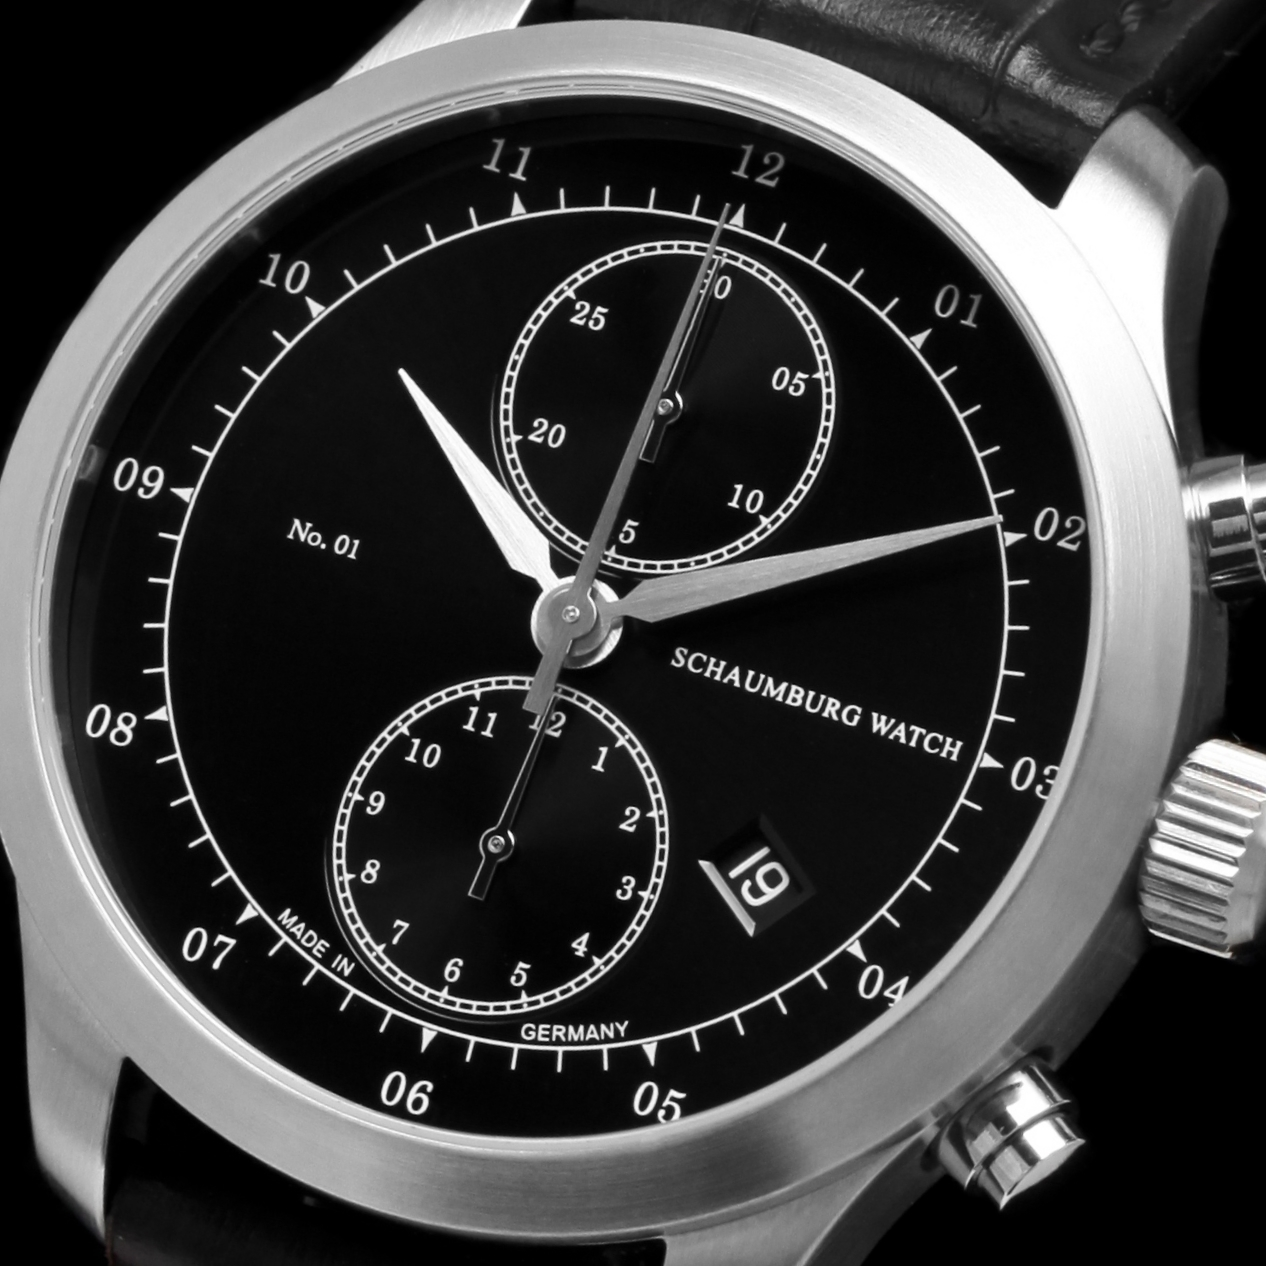 Schaumburg Watch Chronograph No. 01